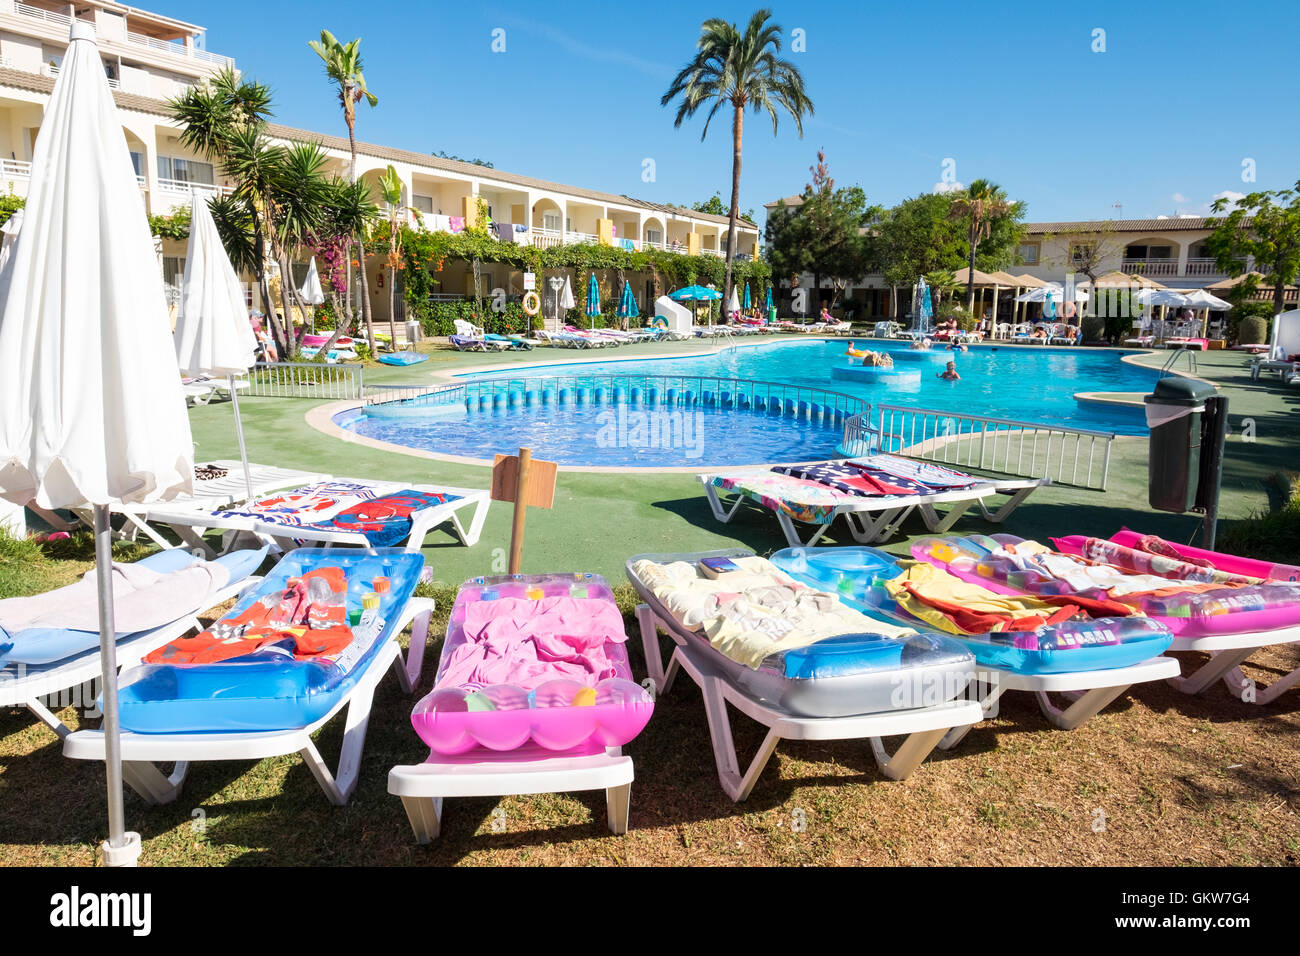 Towels left on sun beds around the pool in the morning by tourists reserving sun loungers for later in the day, - Stock Image